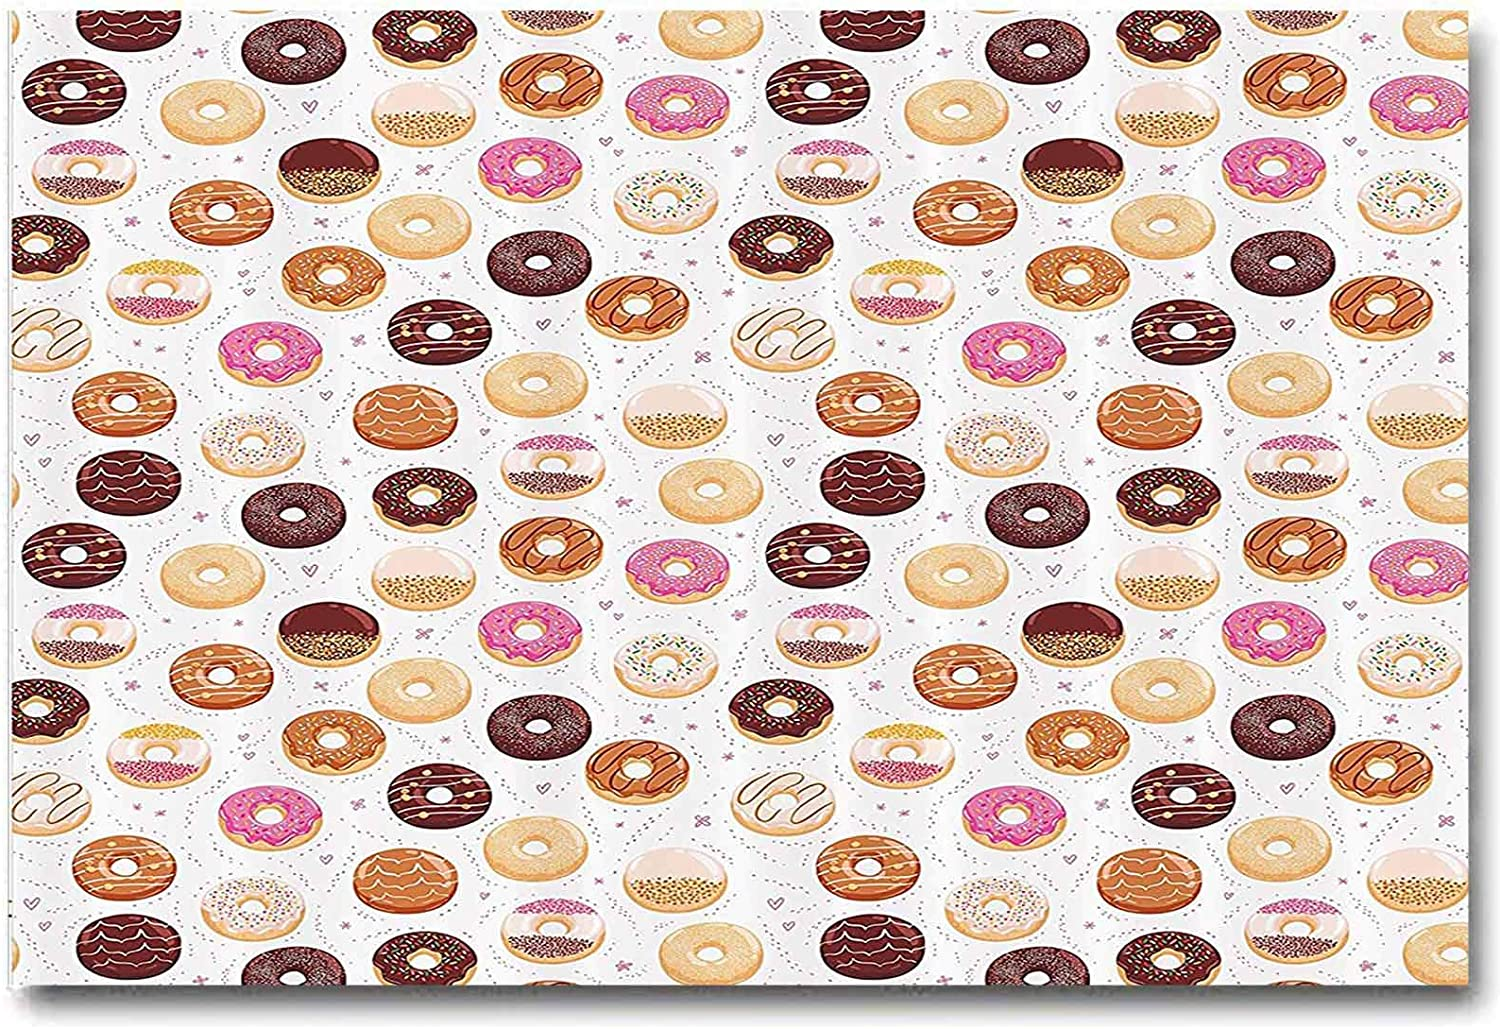 ScottDecor Home Decor Metal Wall Art Outdoor Donuts and Little Hearts Pattern Colorful Yummy Delicious Dessert Cafeteria Restaurant Art Best Mens Gifts 2020 Pink Brown L24 x H48 Inch